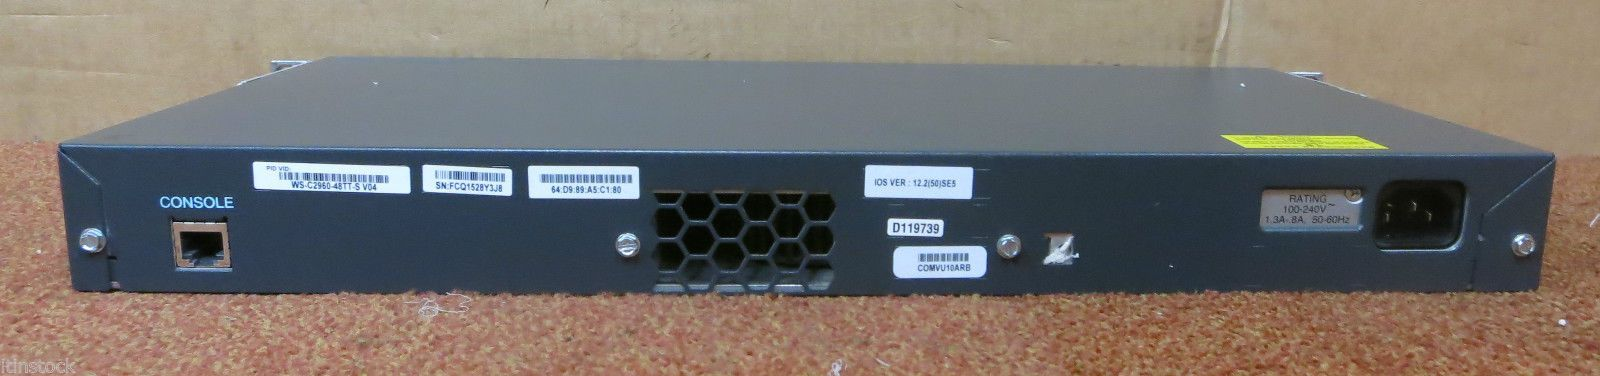 Cisco WS-C2960-48TT-S Catalyst 2960 Series SI 48 Port Ethernet Network  Switch